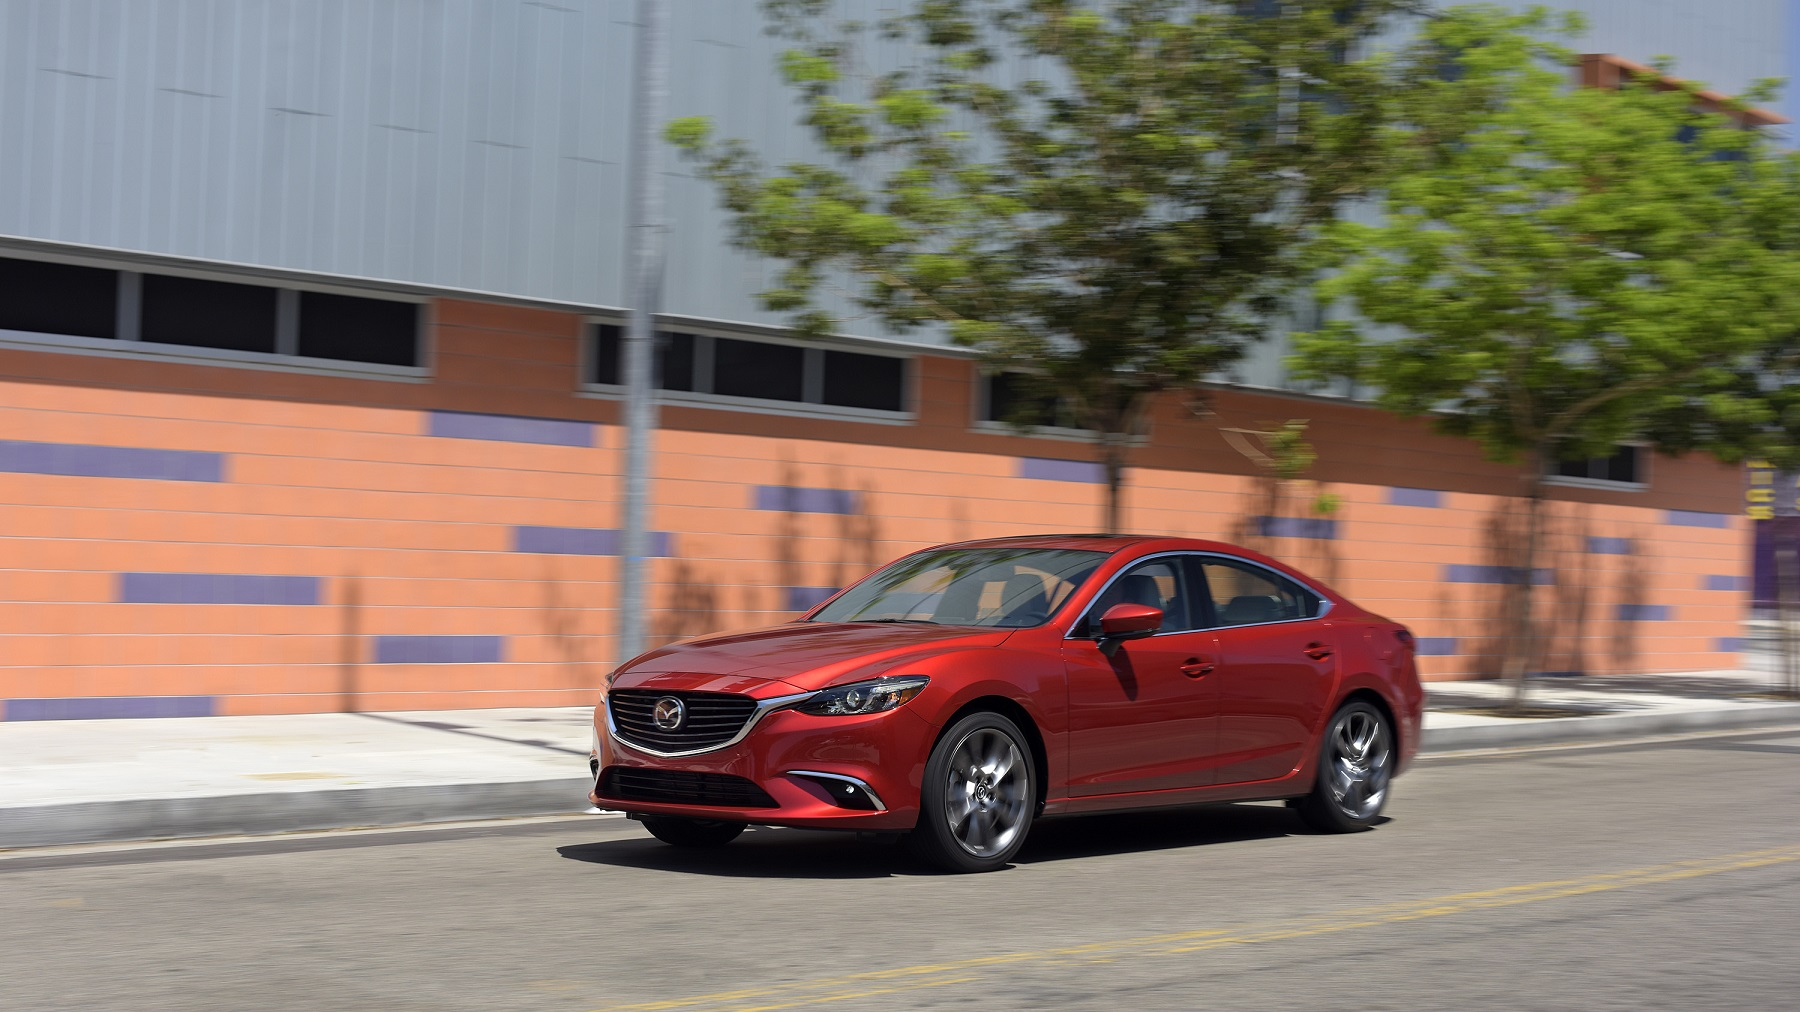 Manufacturer photo: 2017 Mazda6 models come equipped with a SKYACTIV-G 2.5-liter engine and feature added sound insulation improvements throughout their interiors and door sealing